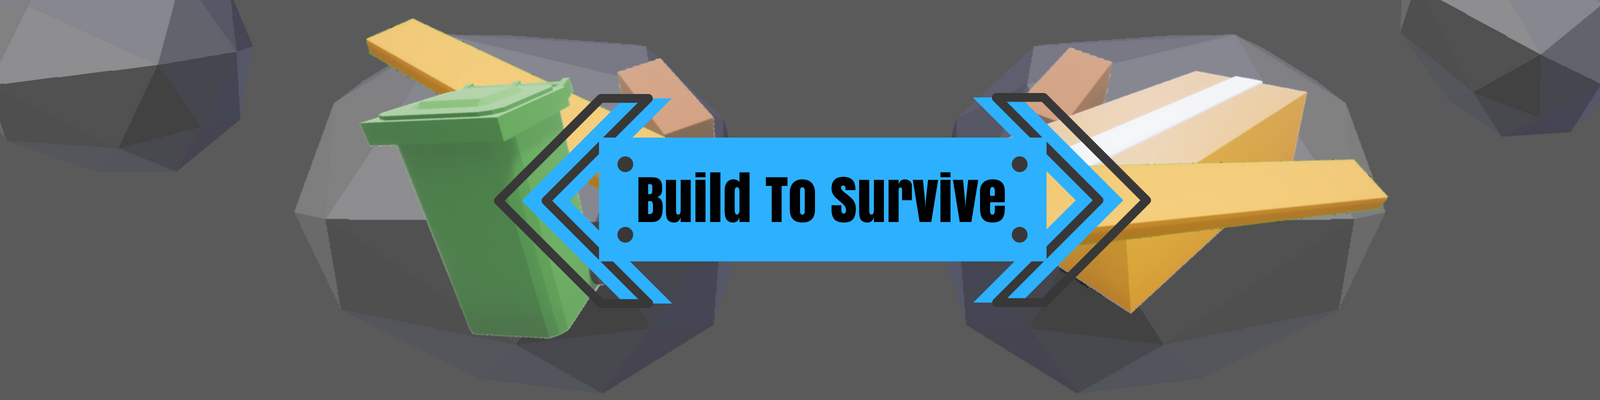 Build To Survive